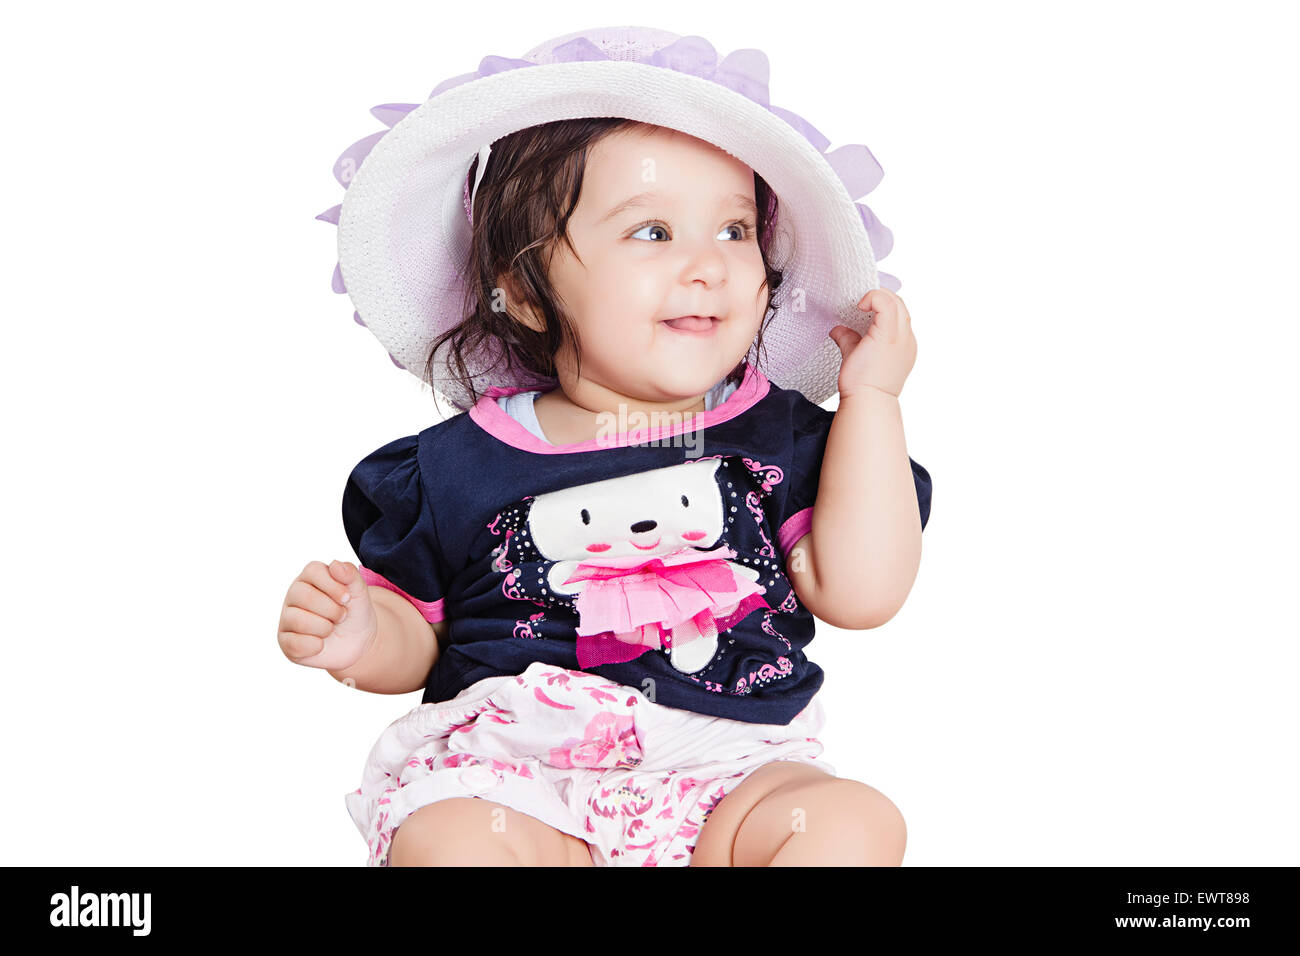 1 indian cute child baby stock photo: 84741252 - alamy